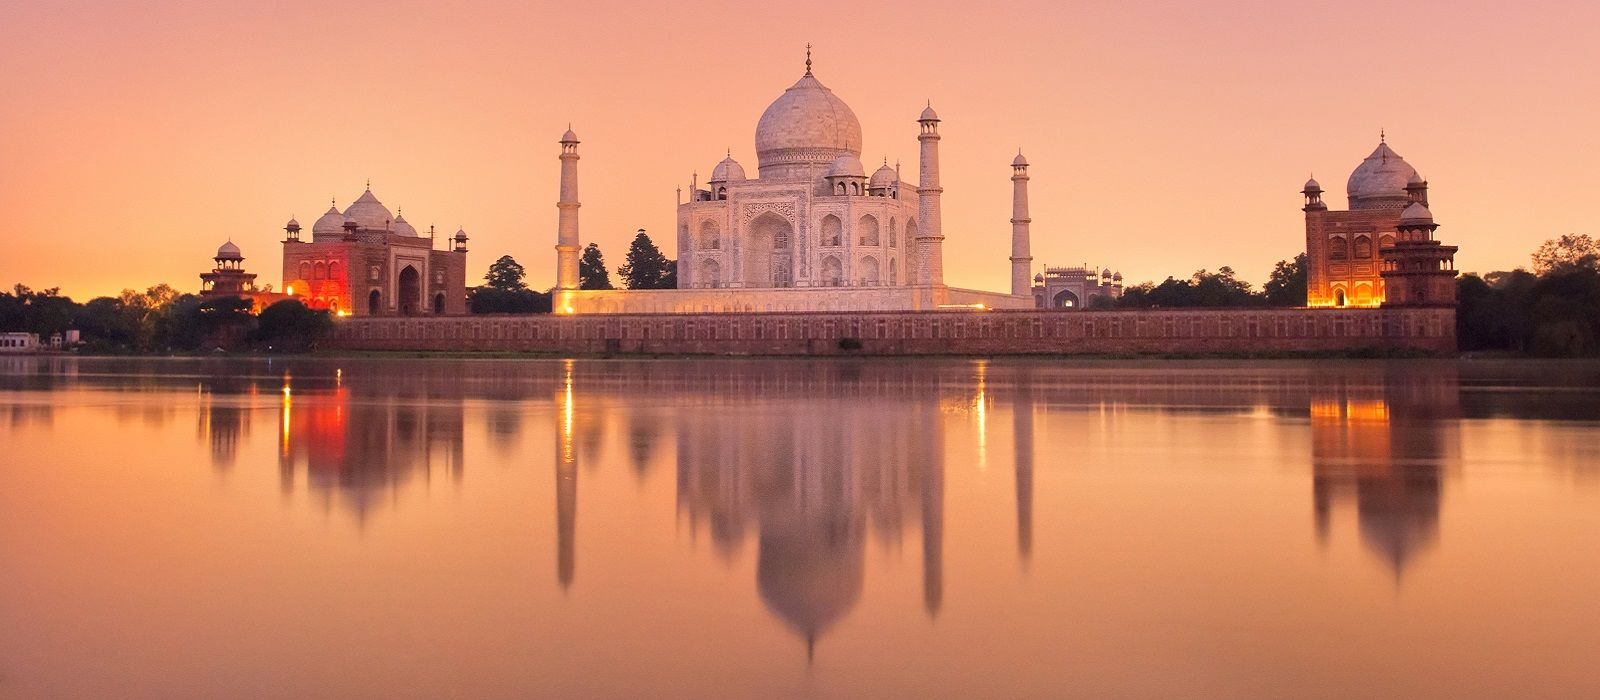 North Indian Luxury: Heritage Cities and Regal Palaces Tour Trip 1